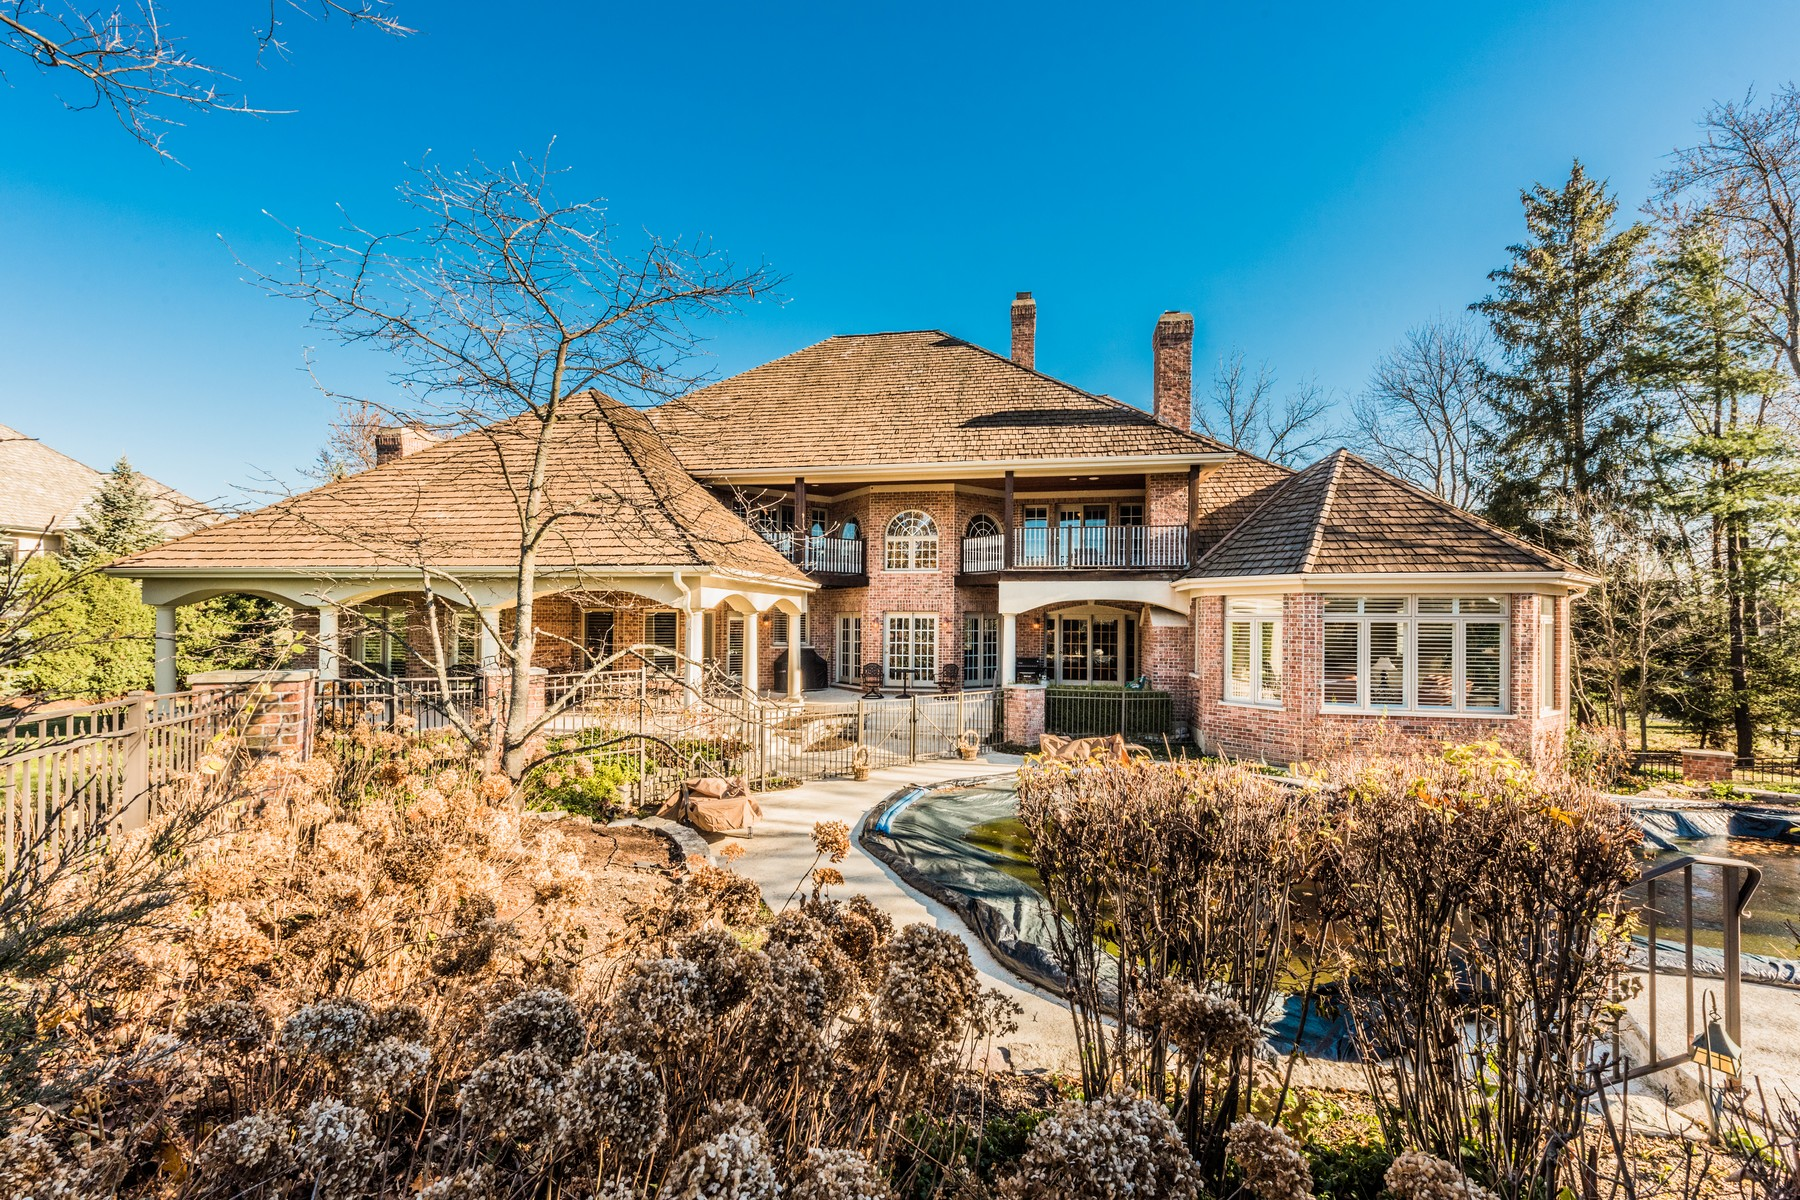 Single Family Home for Sale at Sophisticated living in warm and functional elegance 11 Kensington Drive, North Barrington, Illinois, 60010 United States